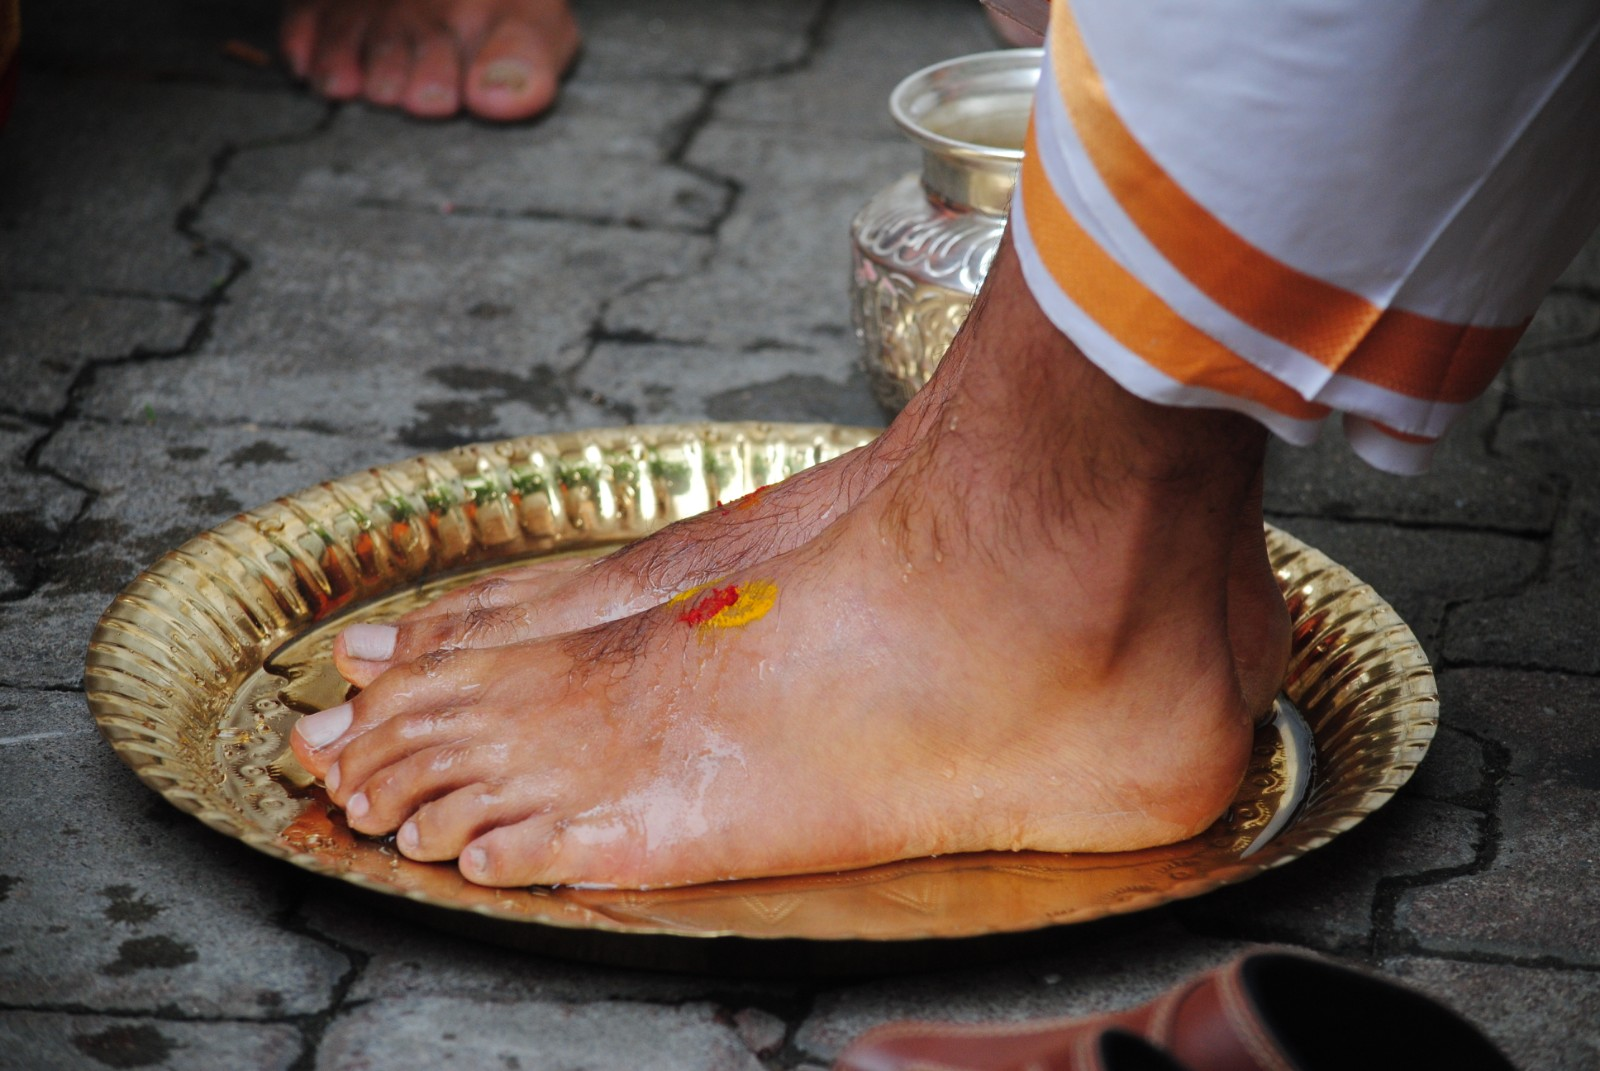 Washing feet, a ritual in hindu weddings